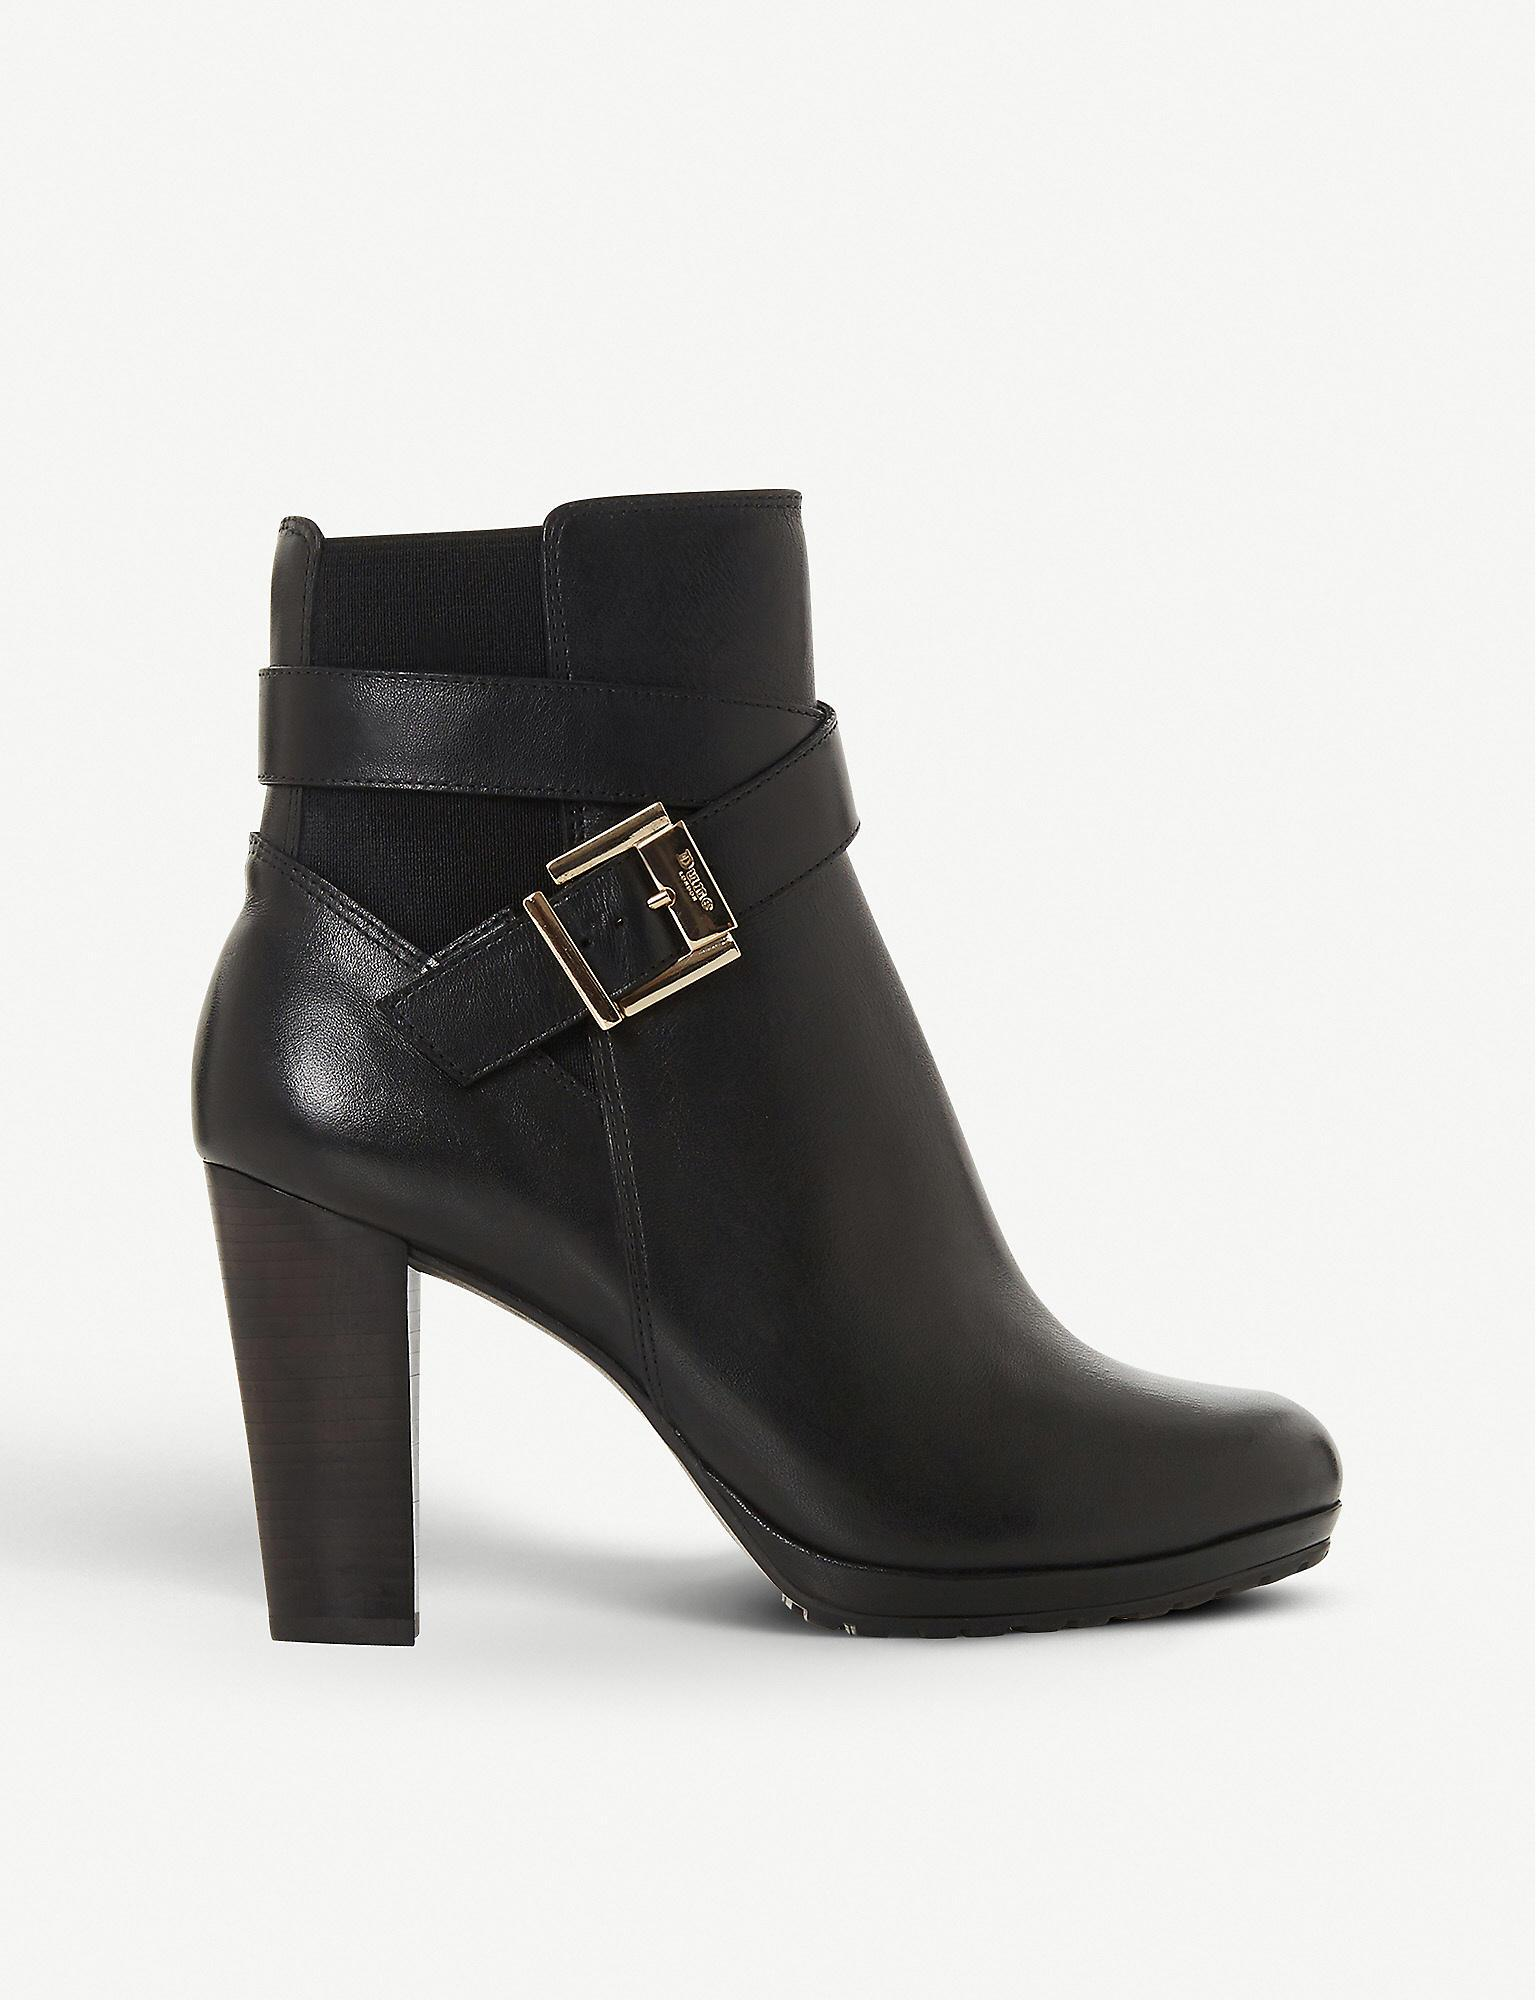 Dune Orrion Leather Ankle Boots in